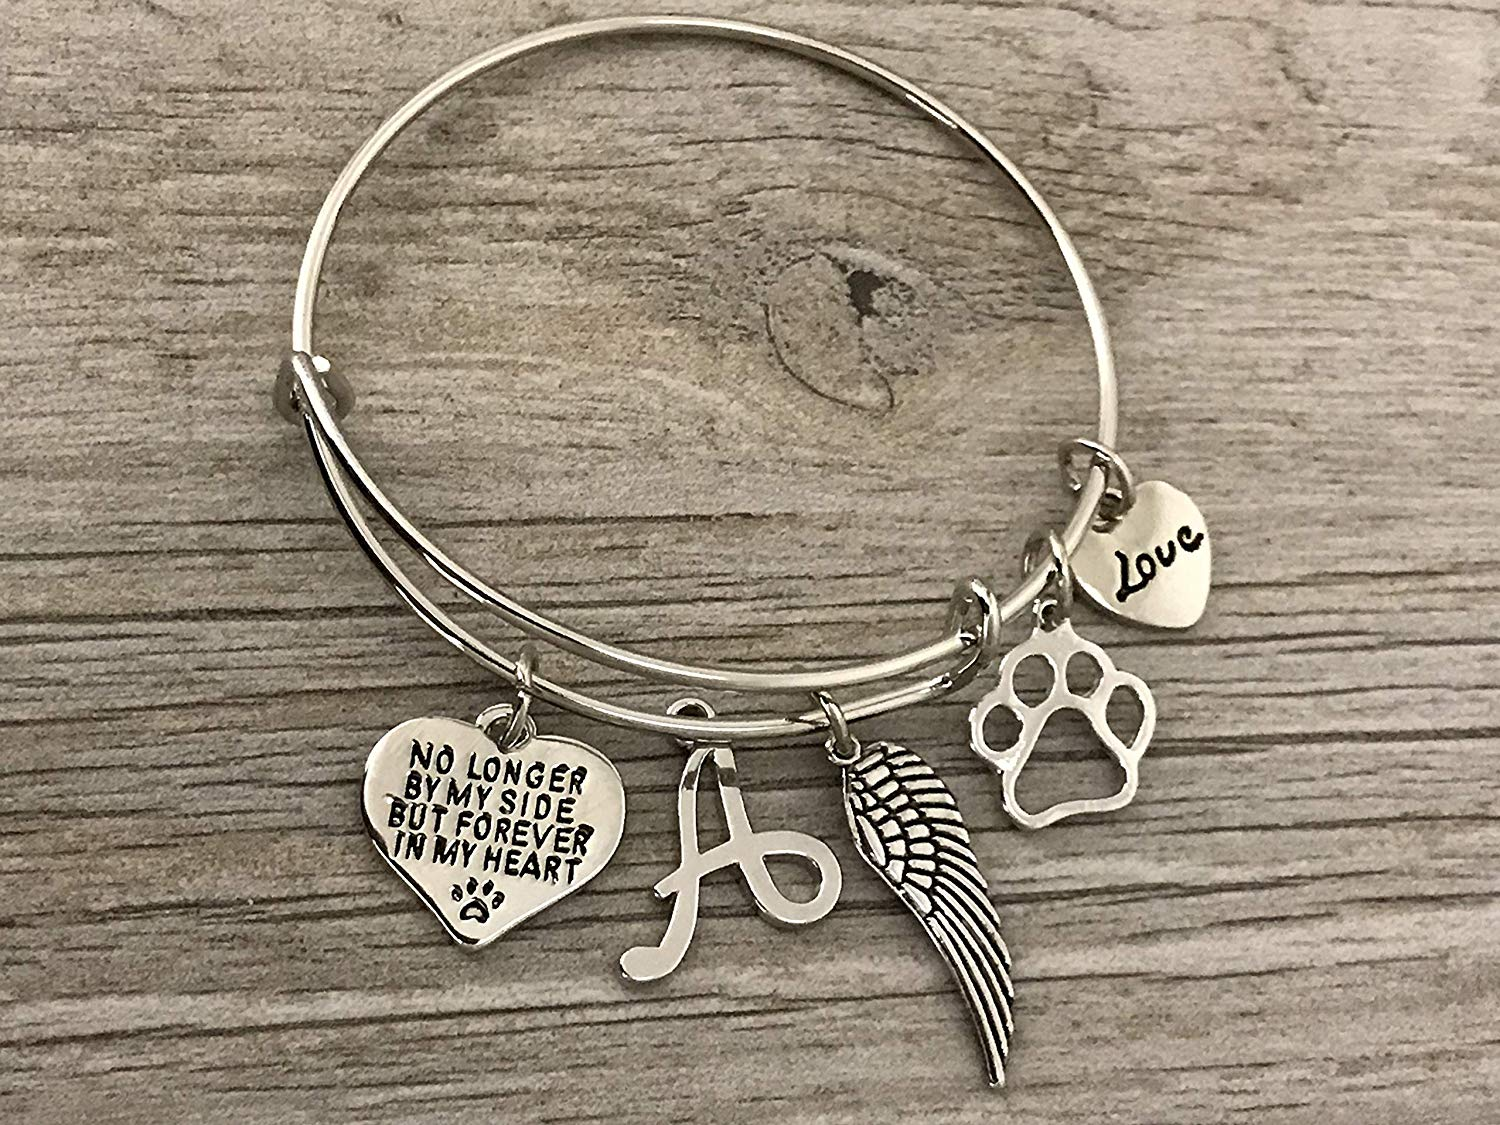 387b8e7ac Personalized Dog Memorial Bracelet with Letter Charm, Custom Dog Charm  Jewelry - Paw Print Jewelry